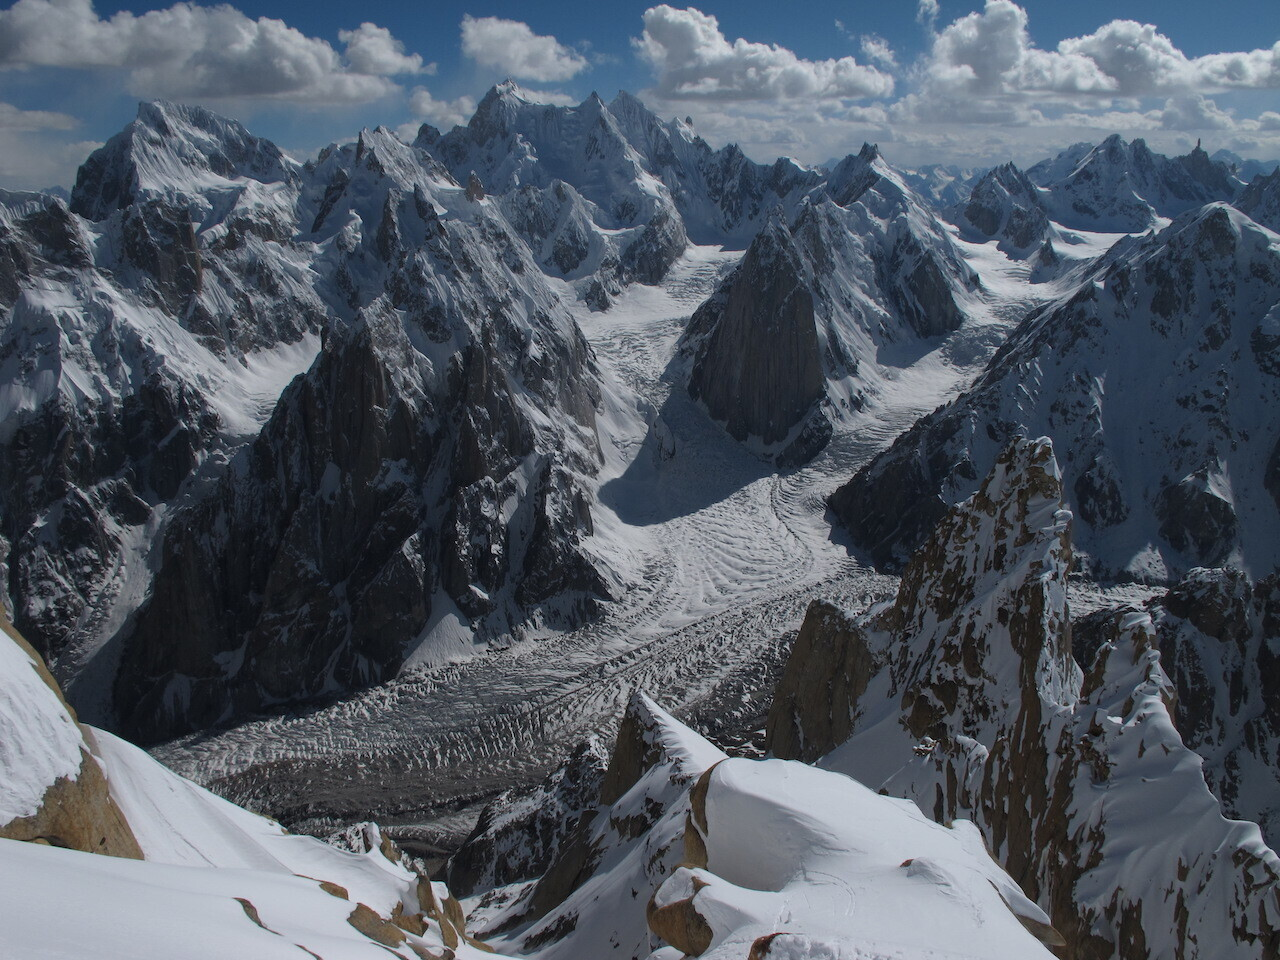 View of Karakoram glaciers in High Mountain Asia